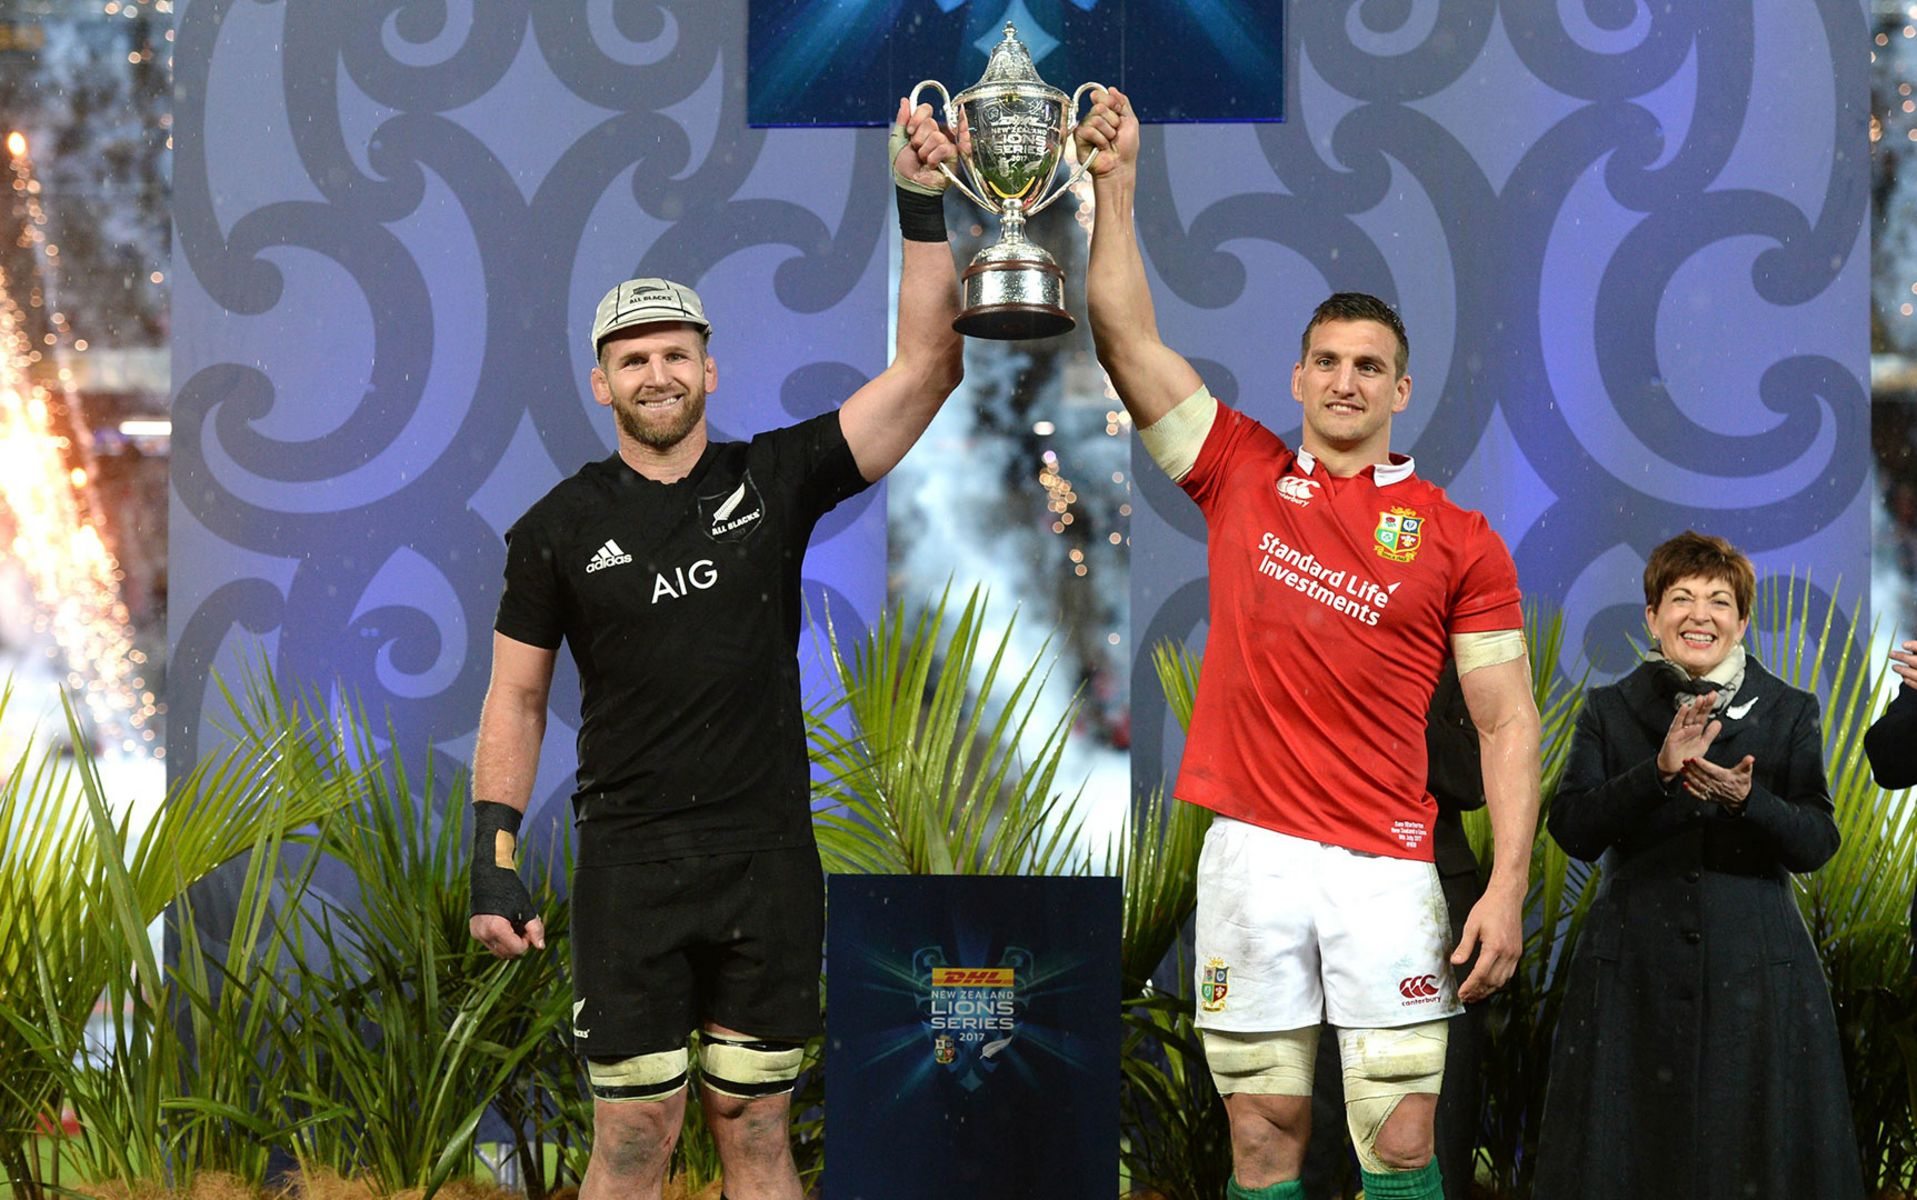 Sam Warburton had constant injury battle - Martyn Williams